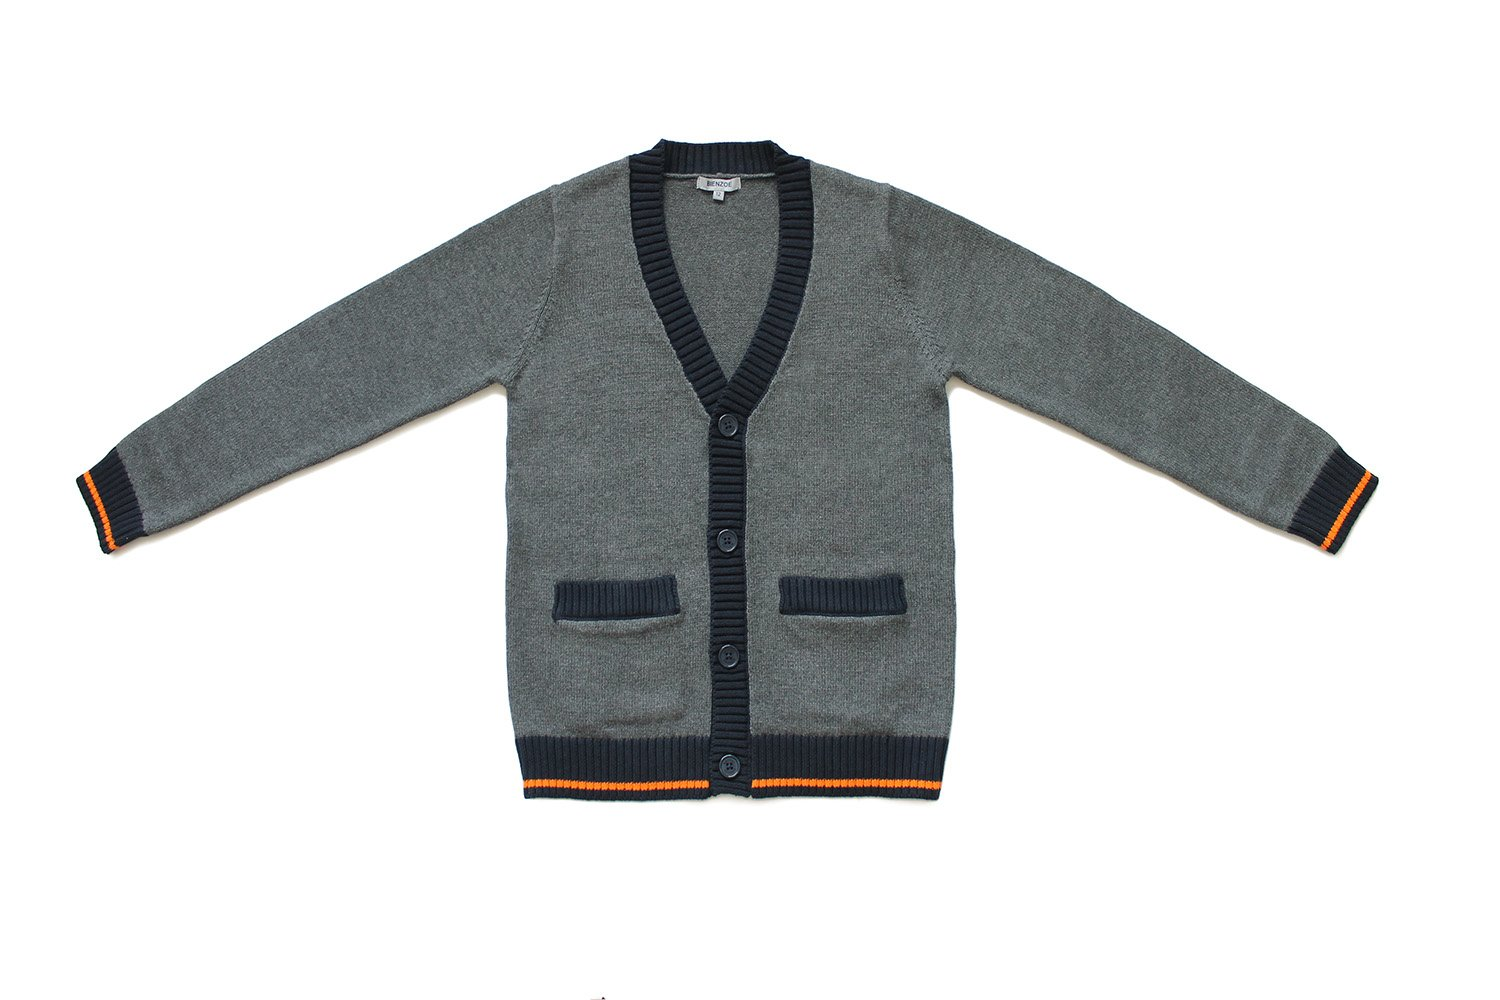 Bienzoe Big Boy's School Uniforms Cotton Antistatic V-neck Cardigan Sweater 12,Dark Grey